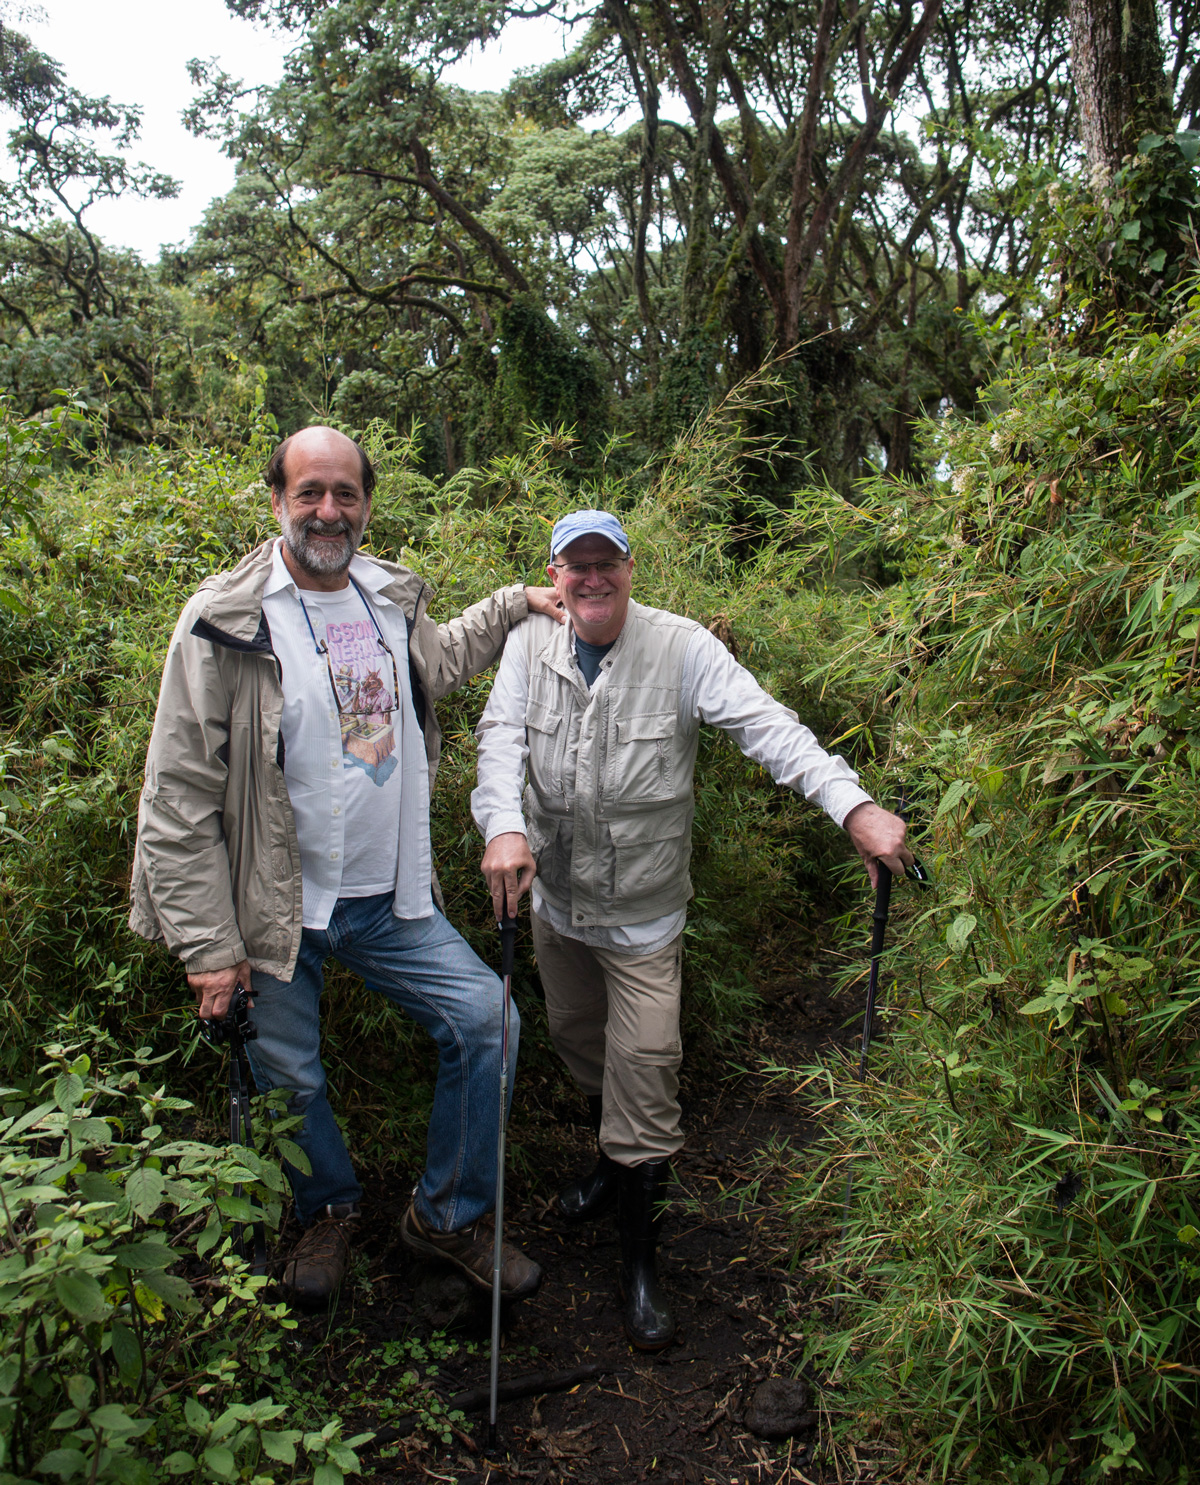 Dana Schorr and Richard Hughes returning from a trek to see the silverback gorillas in Rwanda in 2013.